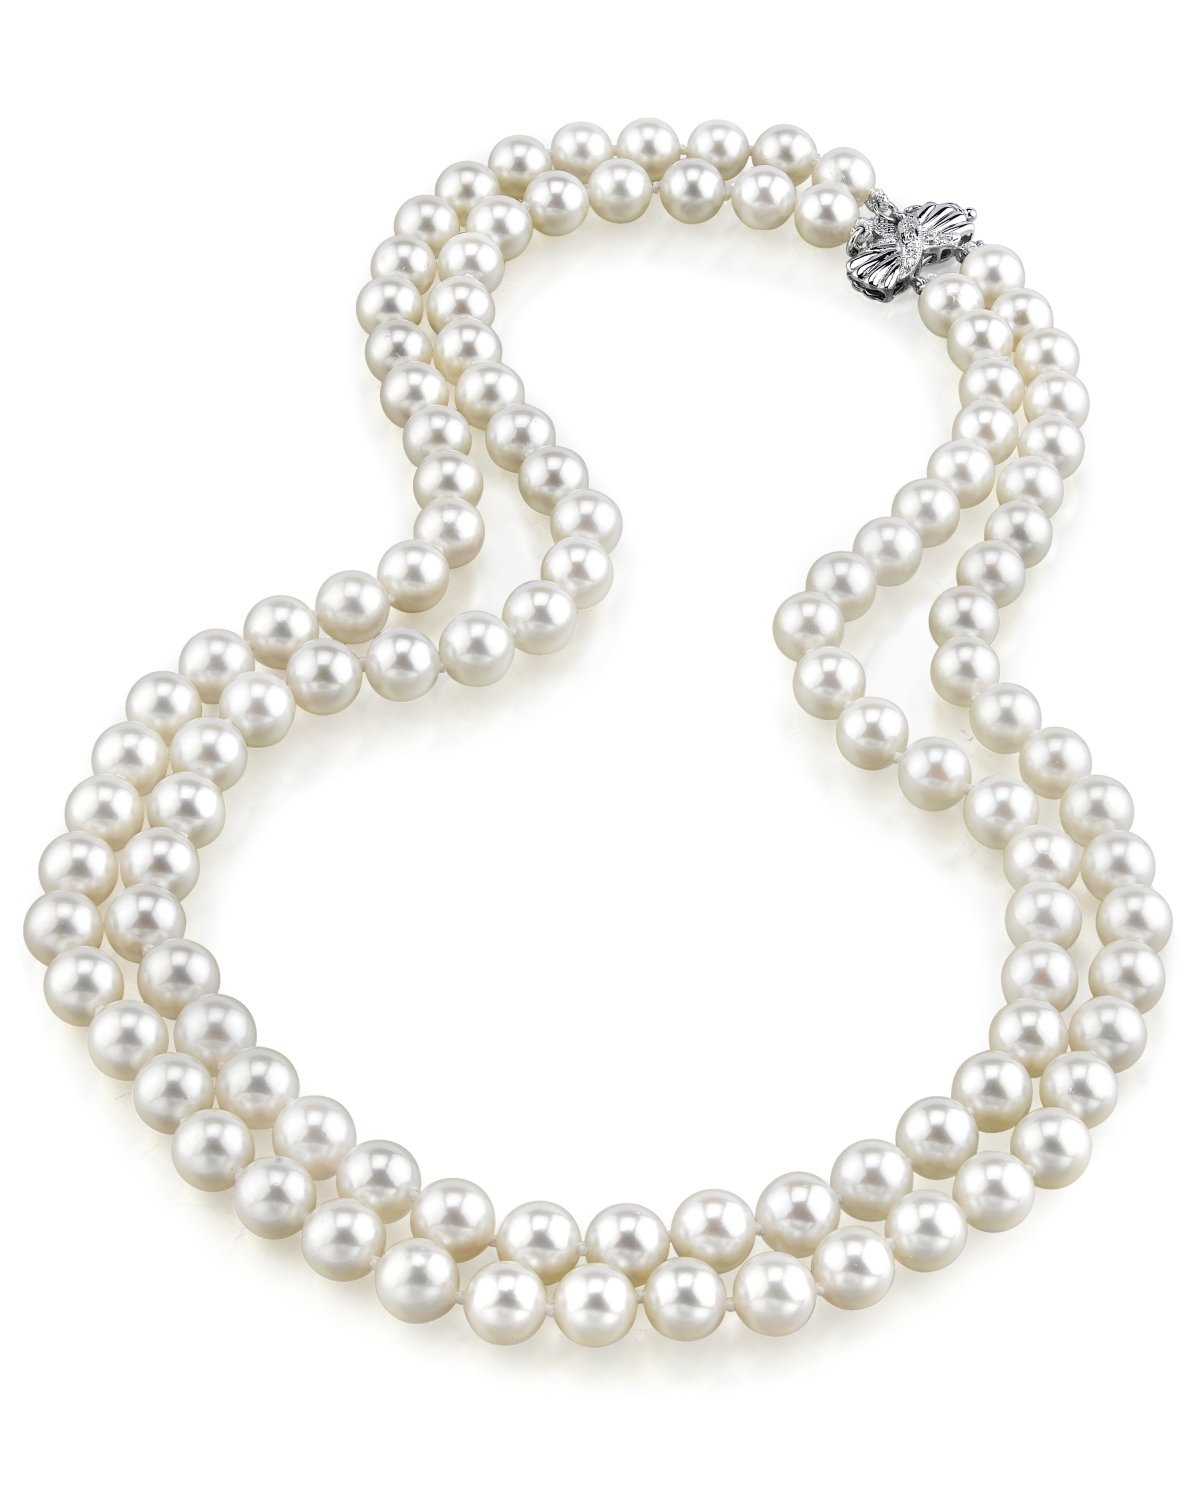 8-9mm Double Strand White Freshwater Pearl Necklace